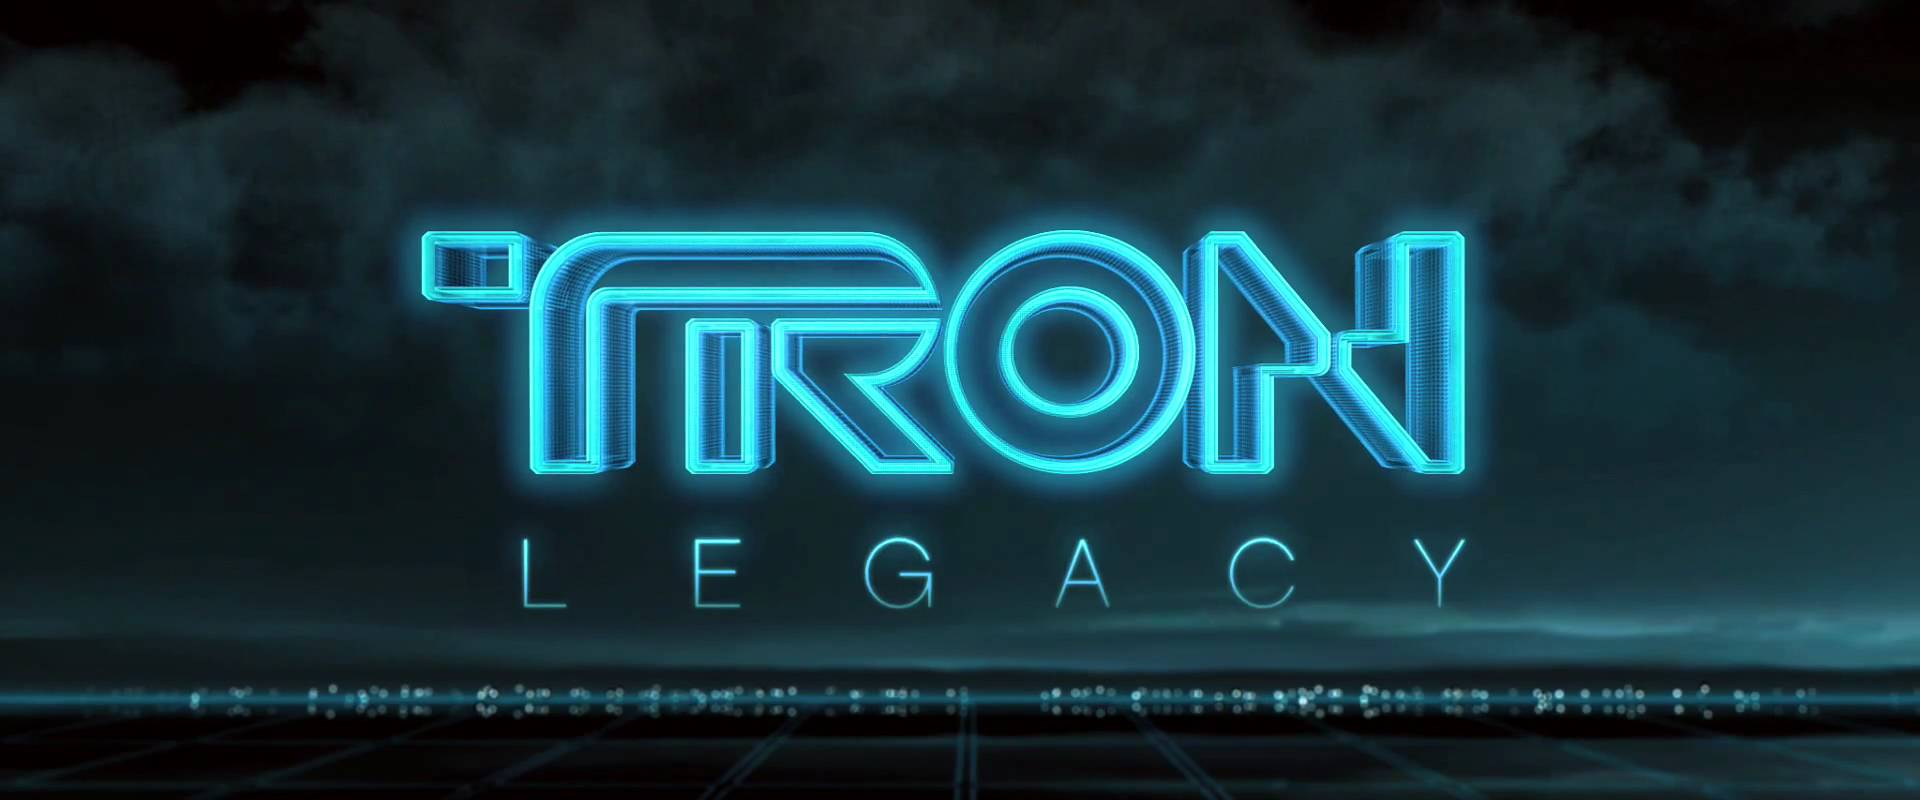 Tron 3 film to feature Legacy cast and director